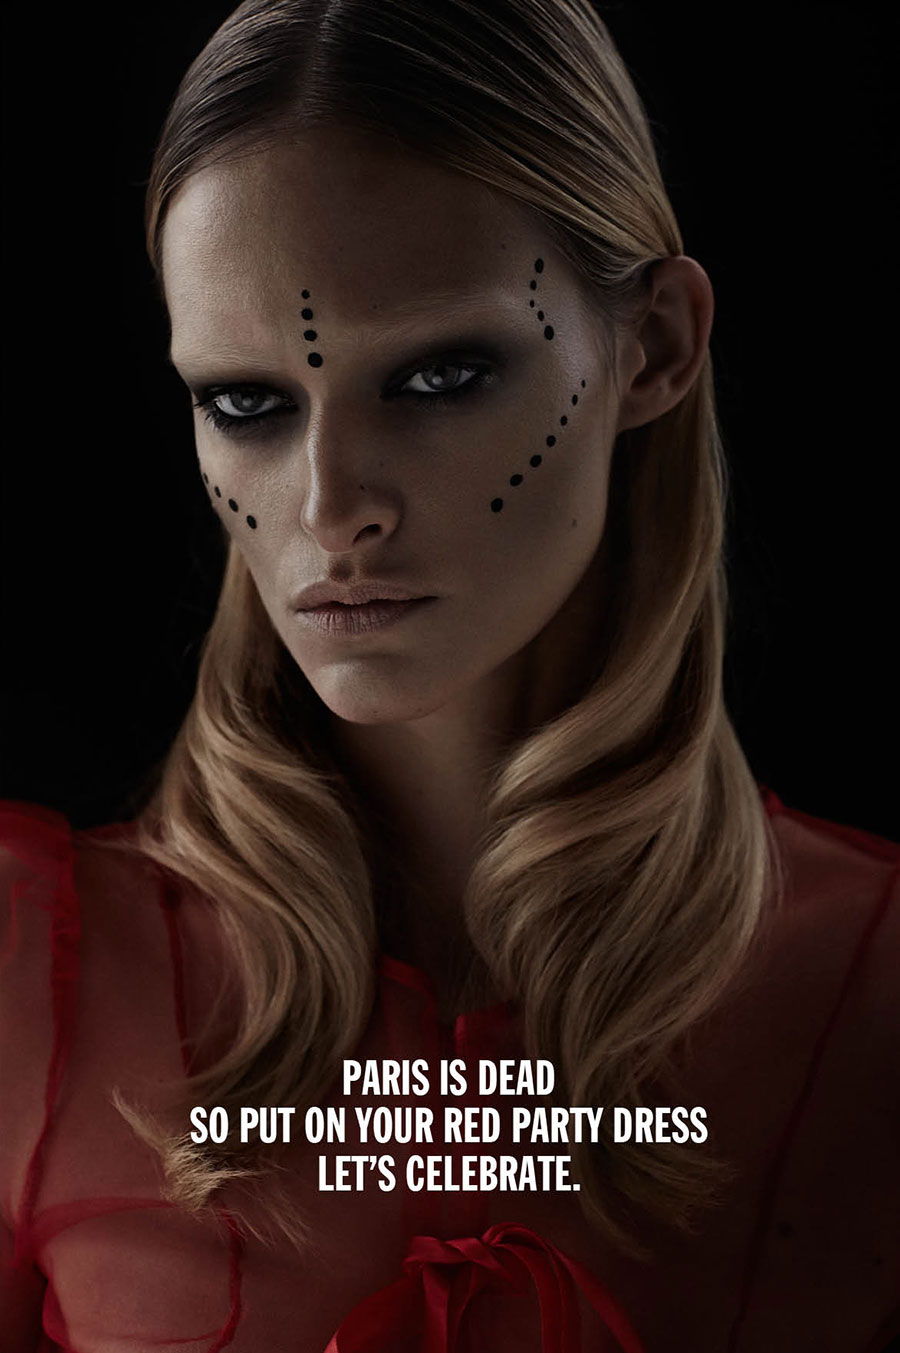 Paris Is Dead Season 2 - put on your red dress, let's celebrate.